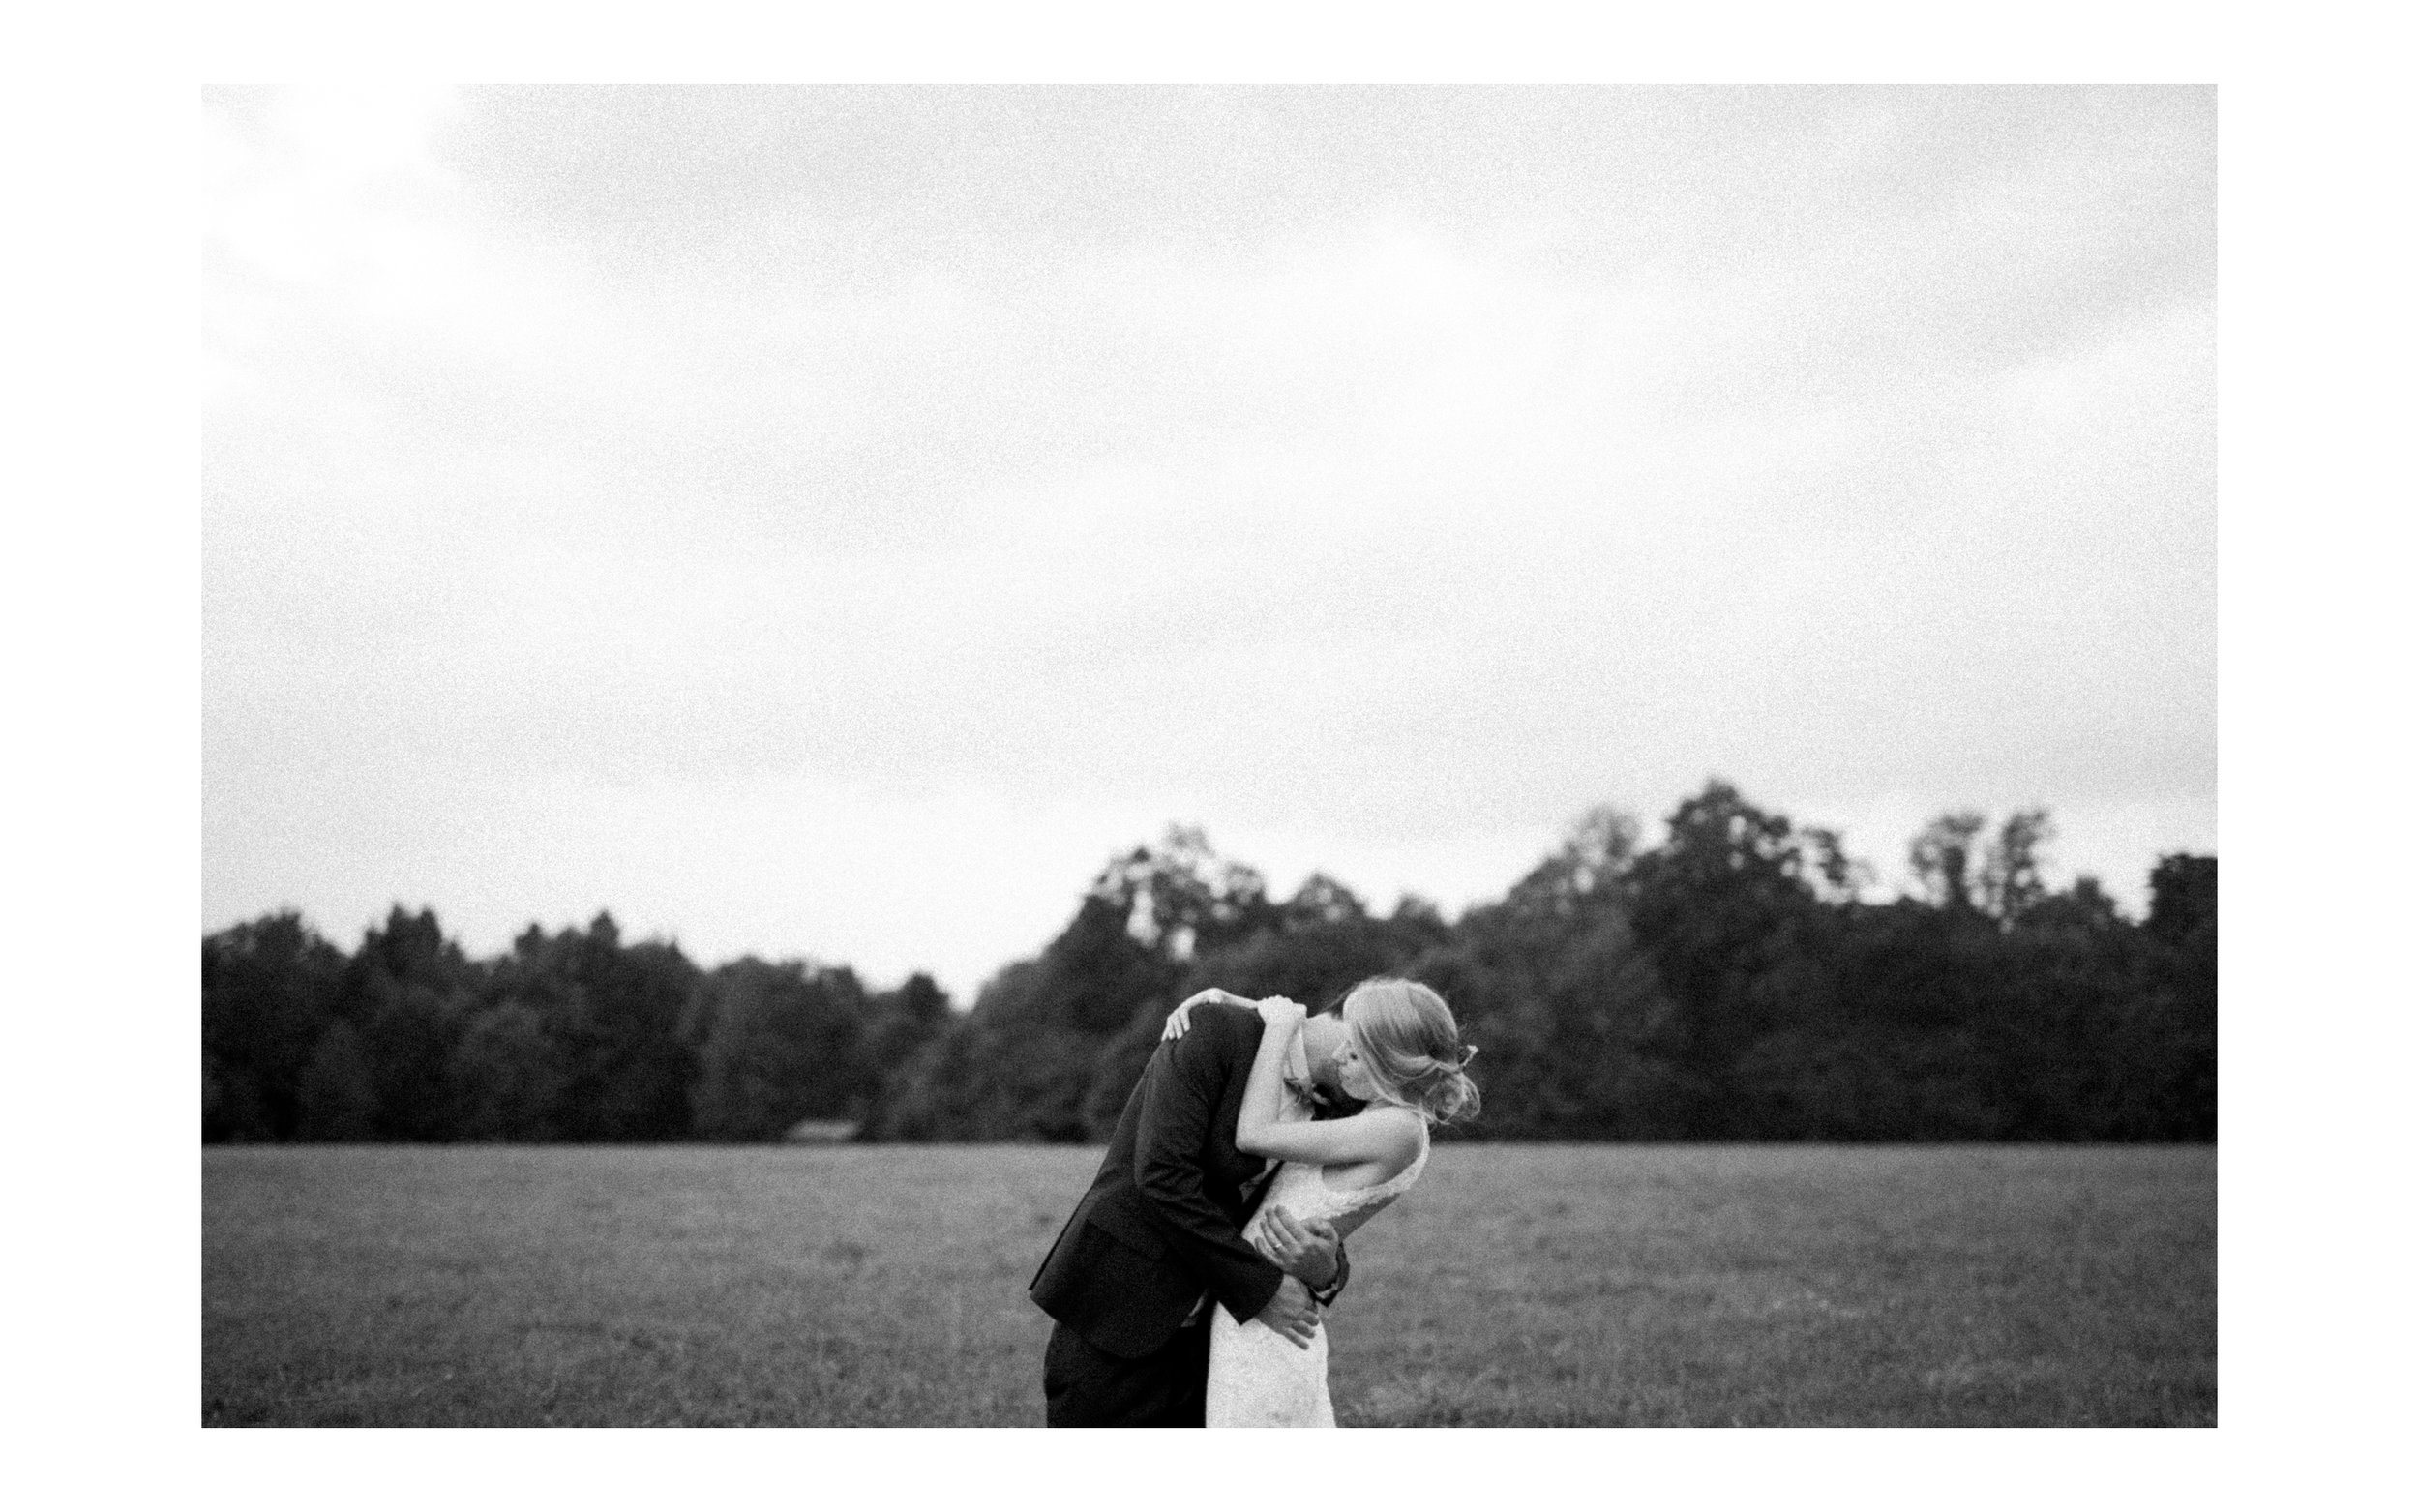 Stowe VT Farm Wedding Fine Art Wedding Photographer_Meg Haley Photographs_063.jpg